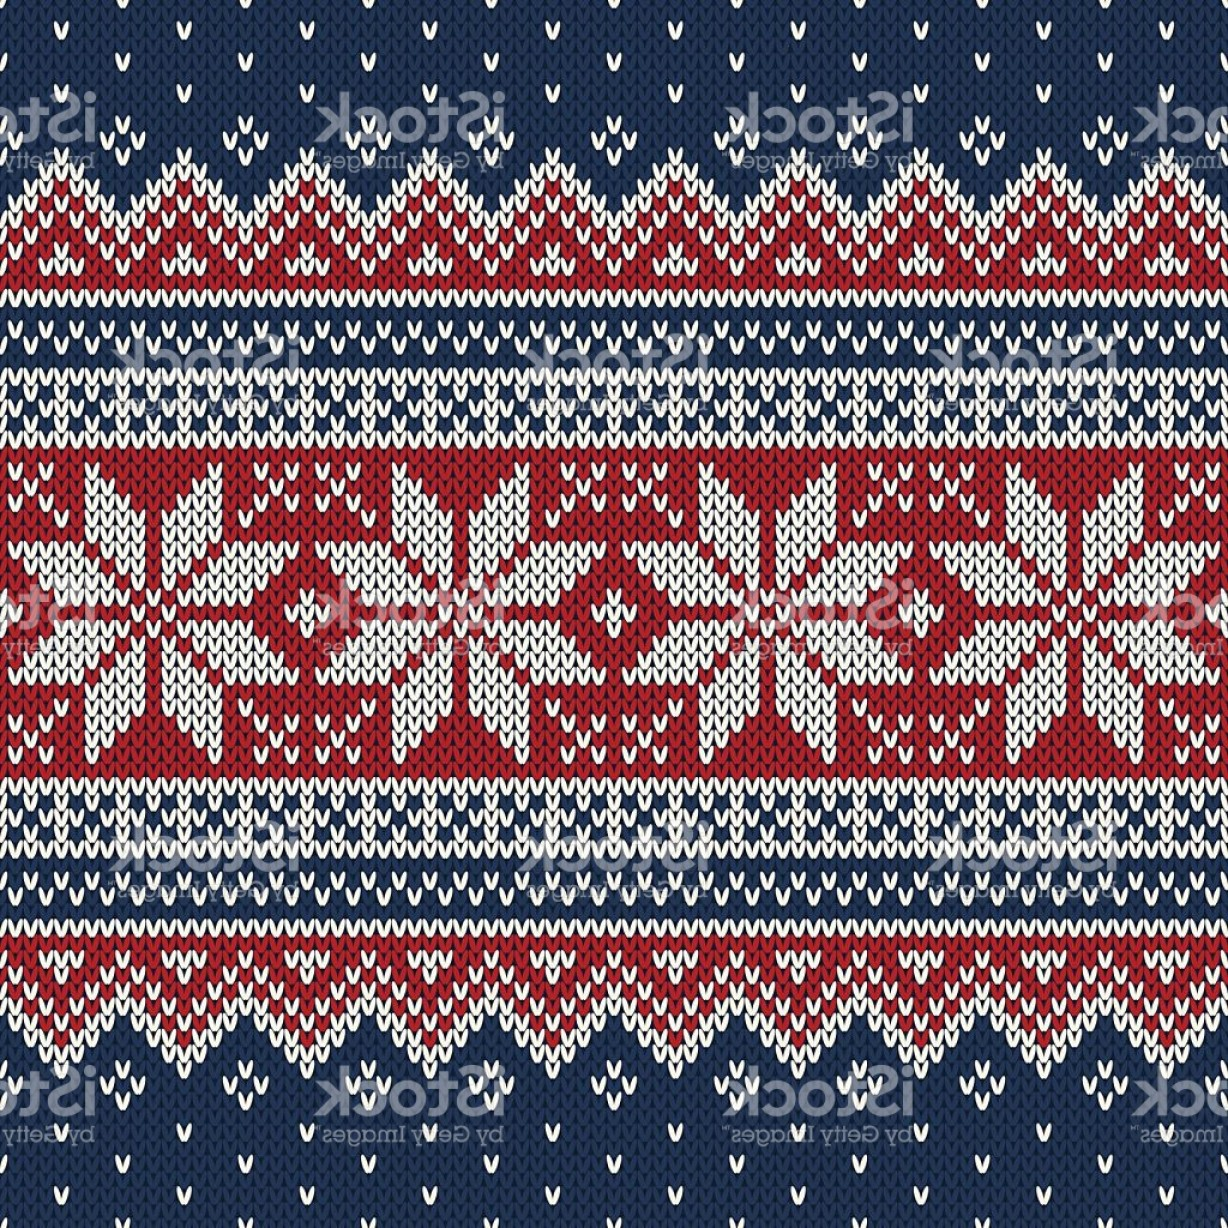 Christmas Sweater Design Vector: Christmas Sweater Design Seamless Knitting Pattern Gm